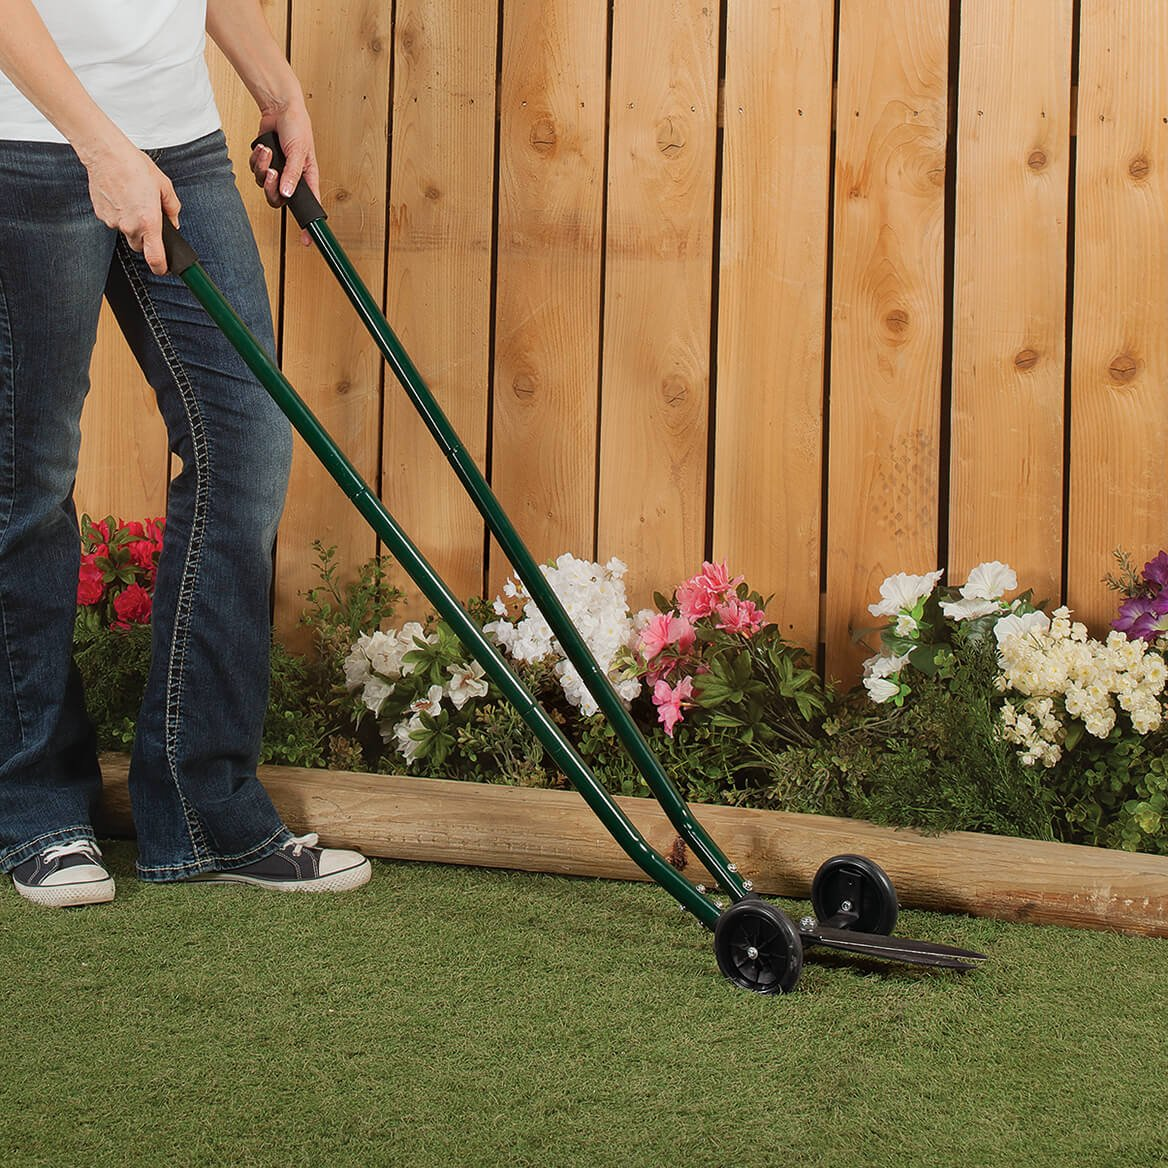 Amazon.com : Miles Kimball Rolling Grass Trimmer : Garden & Outdoor